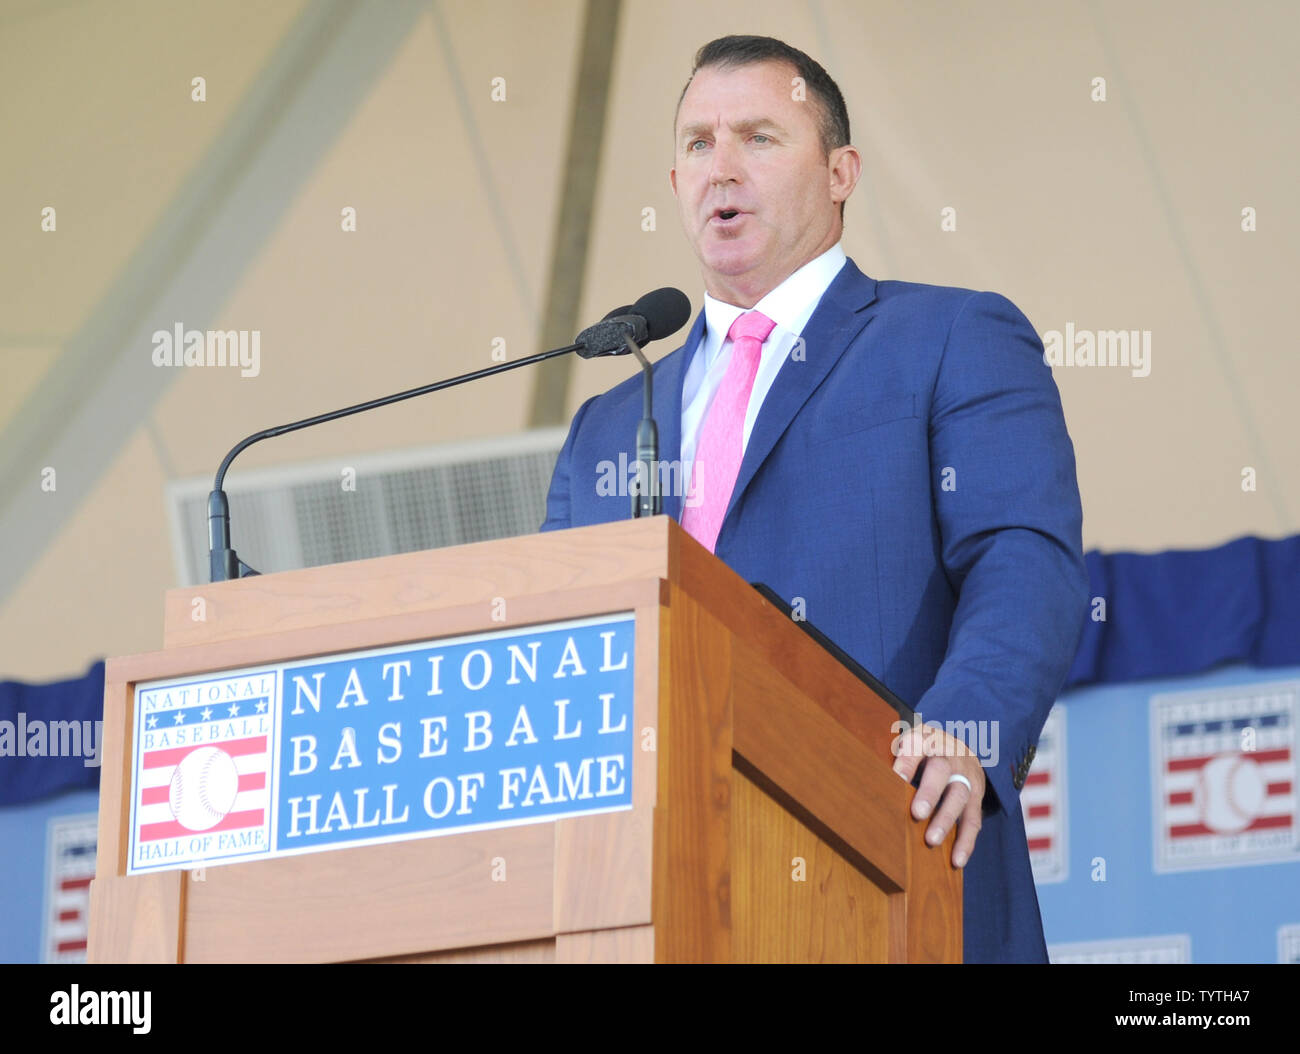 Jim Thome delivers his Baseball Hall of Fame induction speech at the Clark Sports Center in Cooperstown, NY on July 29, 2018.  A record 60 Hall of Famers are scheduled to be in Central New York to honor Vladimir Guerrero, Trevor Hoffman, Chipper Jones, Jack Morris, Jim Thome and Alan Trammell at the National Baseball Hall of Fame and Museum during Hall of Fame Weekend on July 27-30.     Photo by George Napolitano/UPI - Stock Image